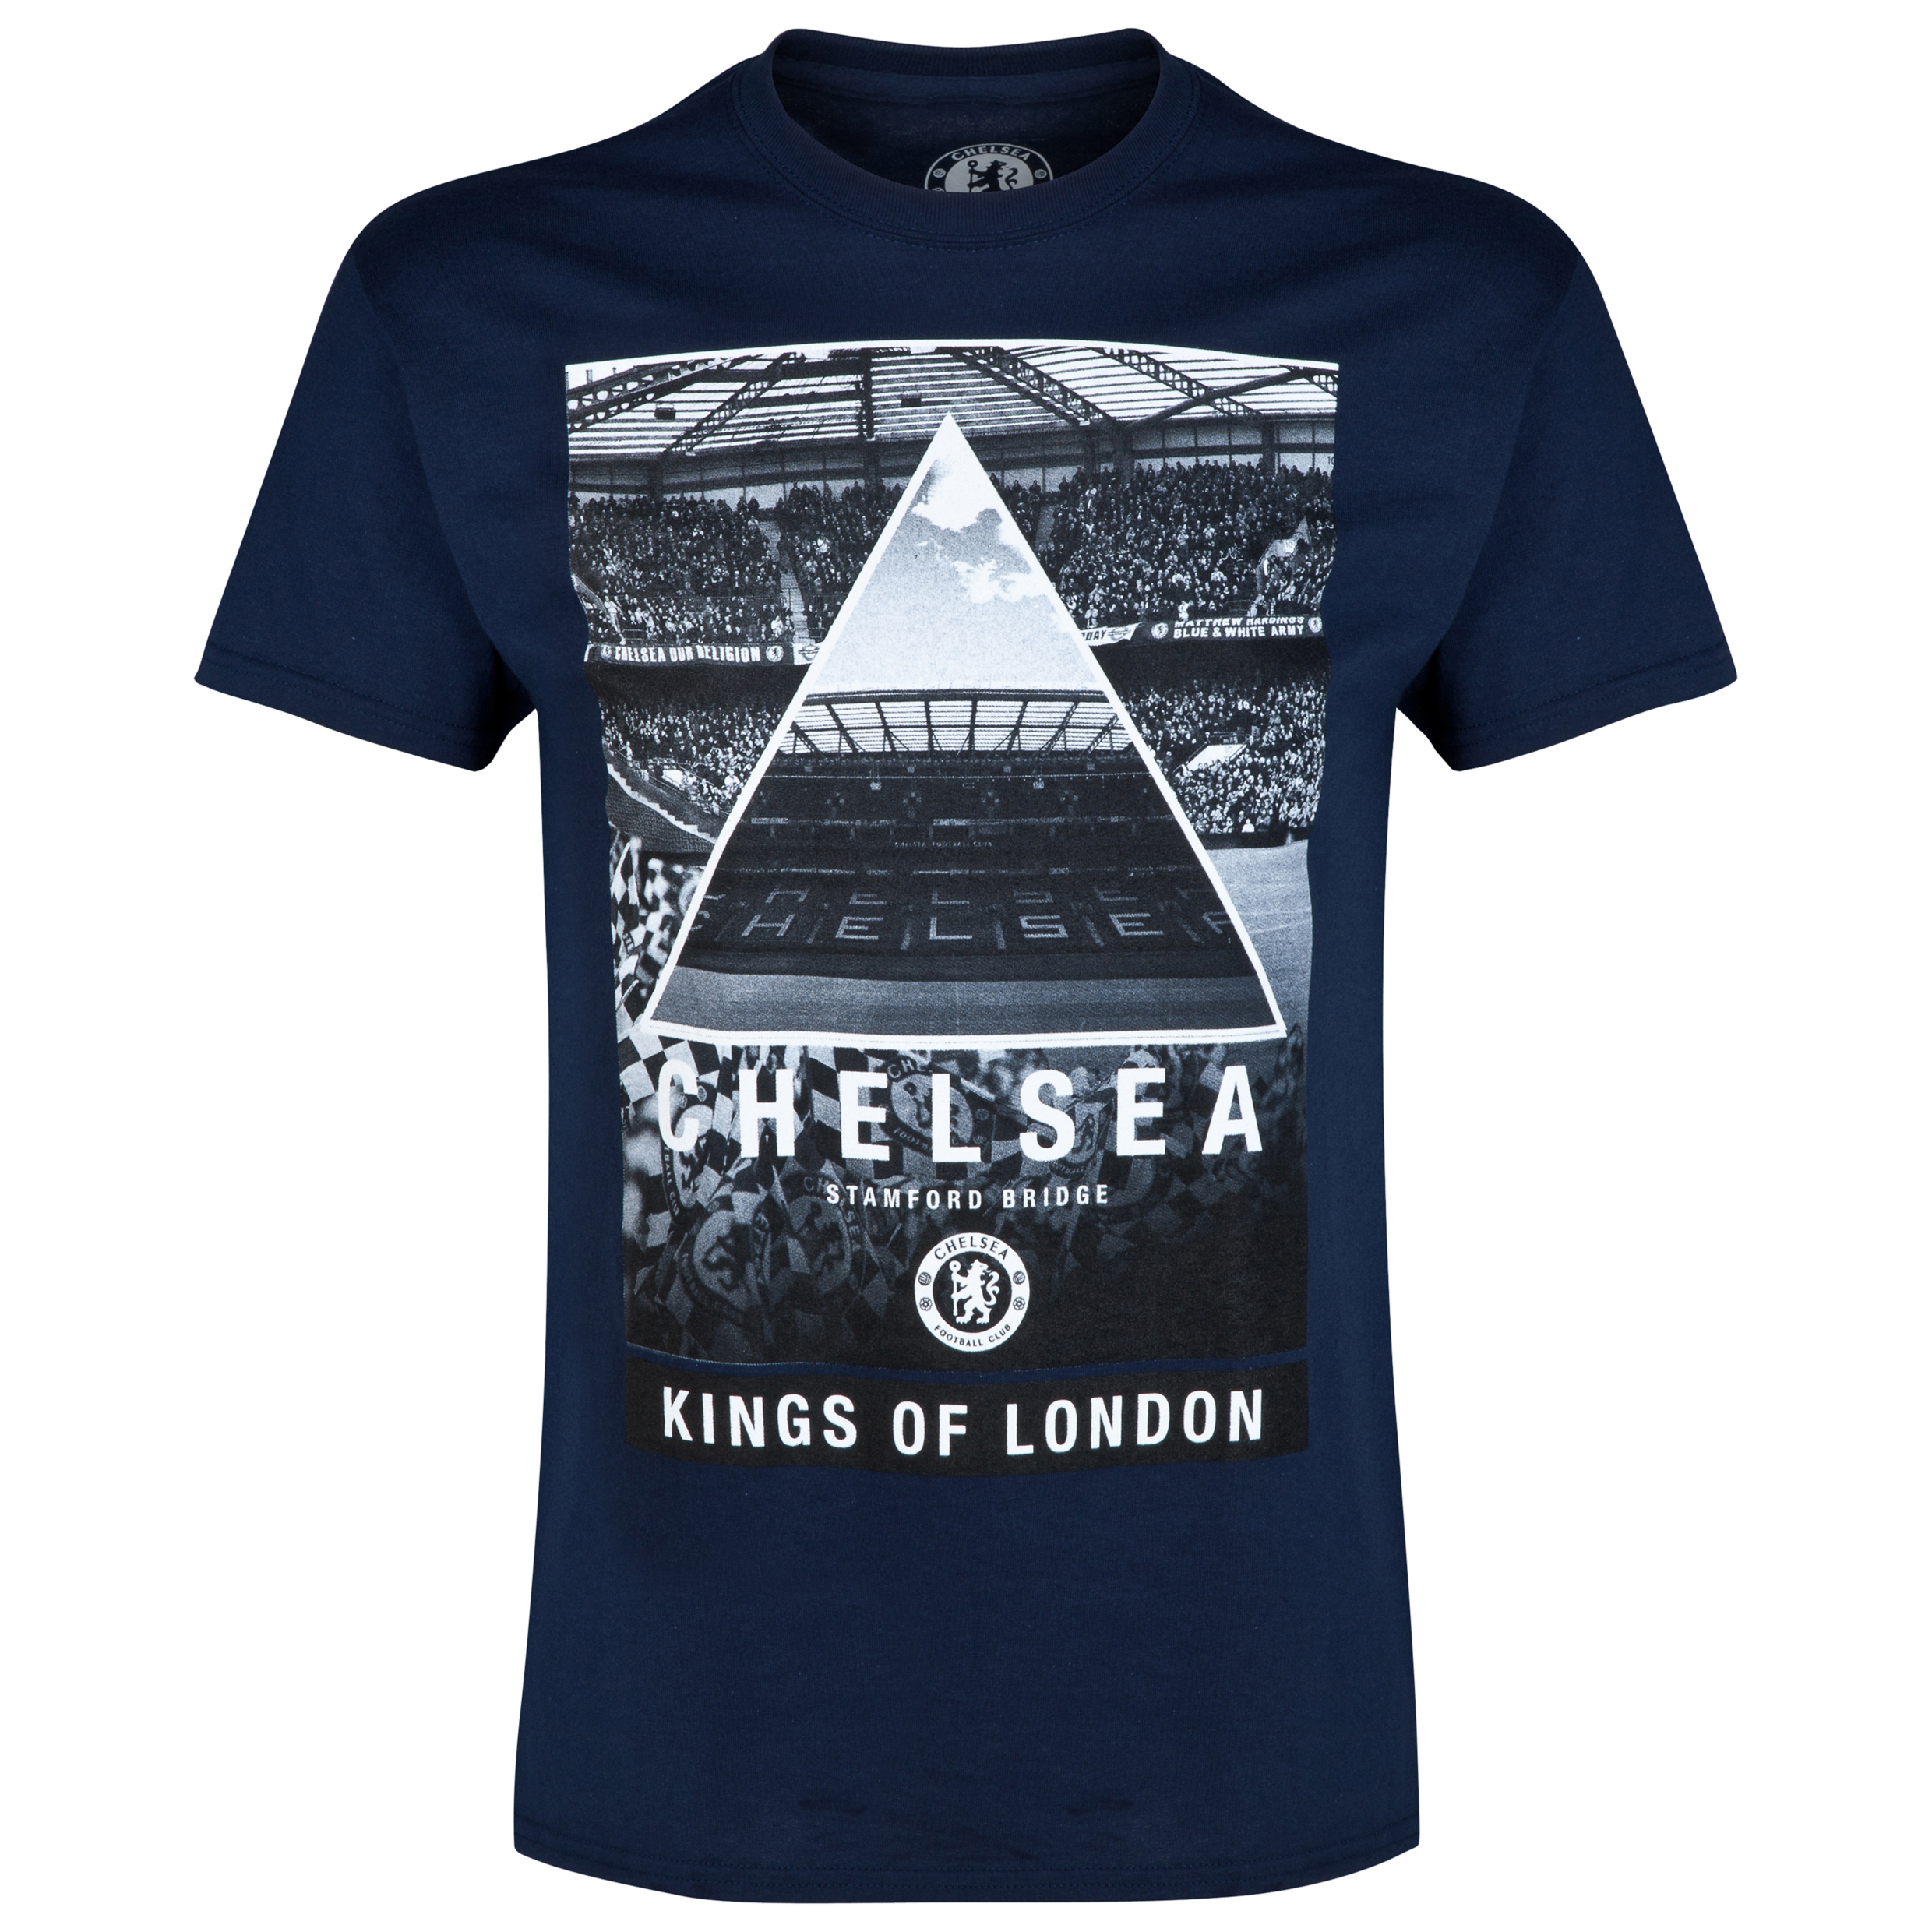 Chelsea Stadium T-Shirt - Mens Navy